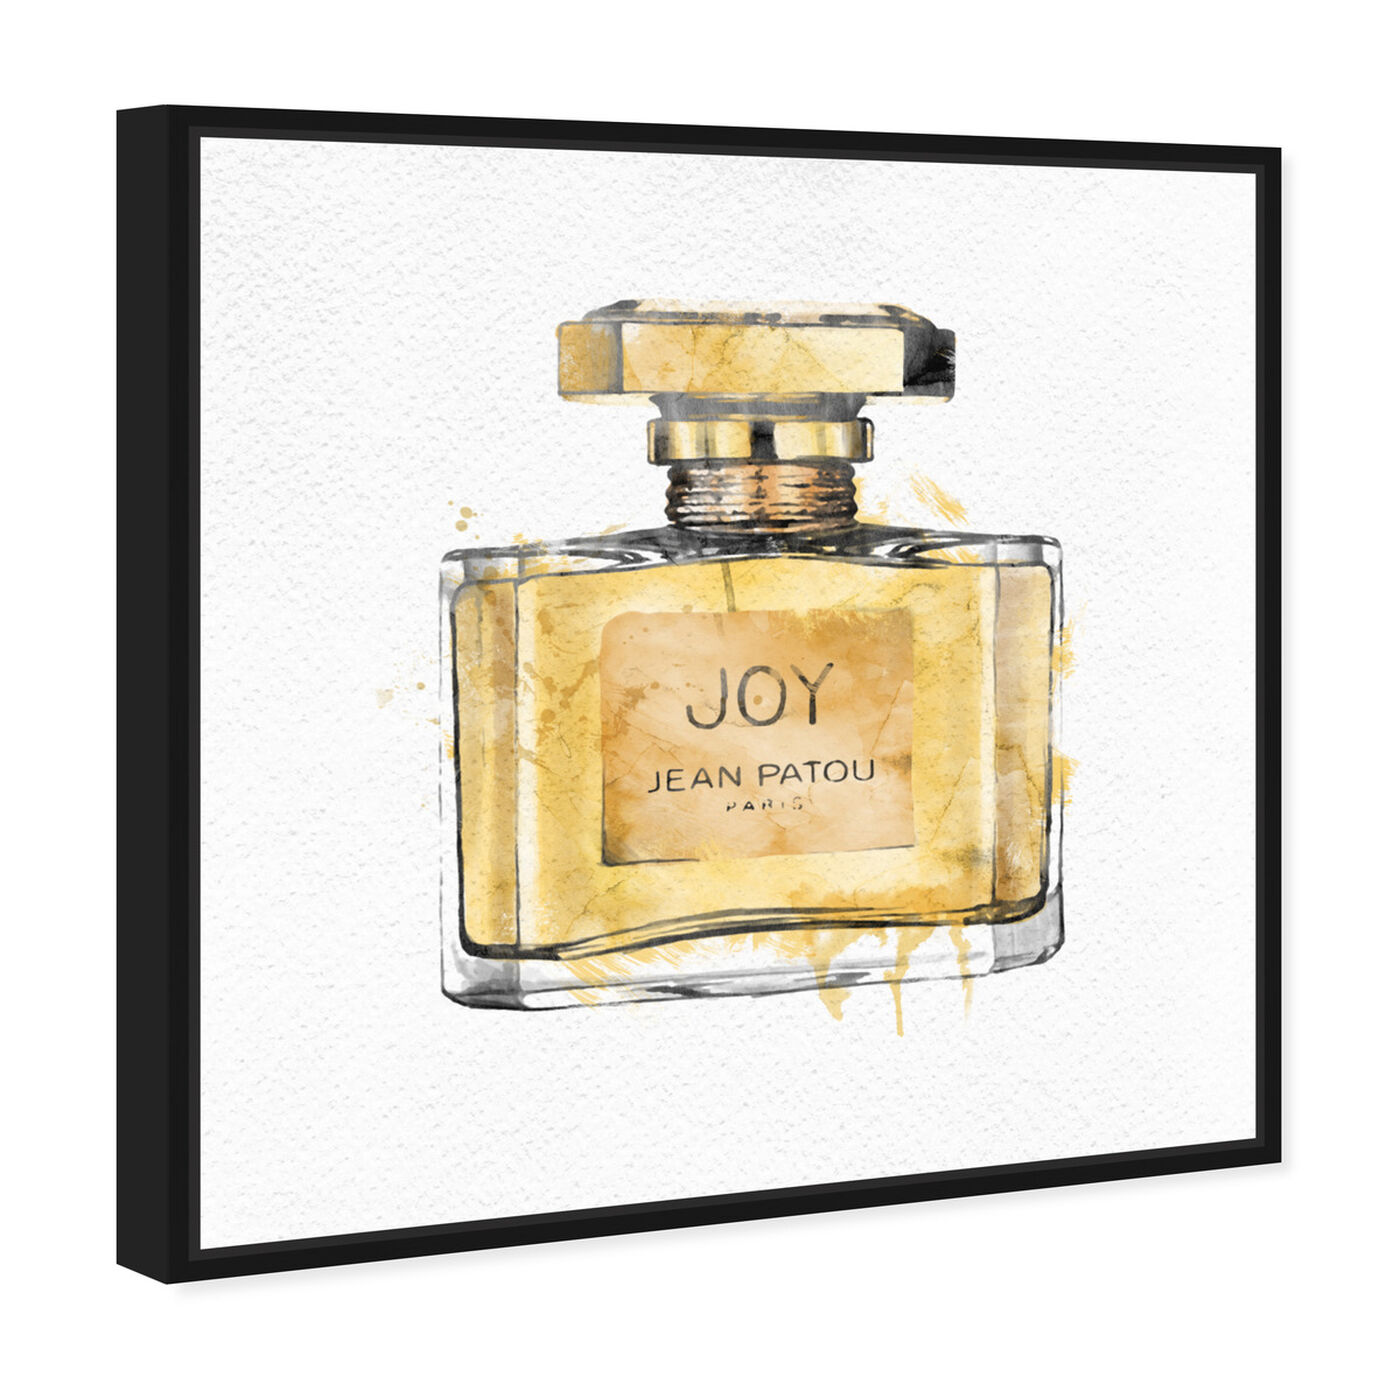 Angled view of Joy featuring fashion and glam and perfumes art.